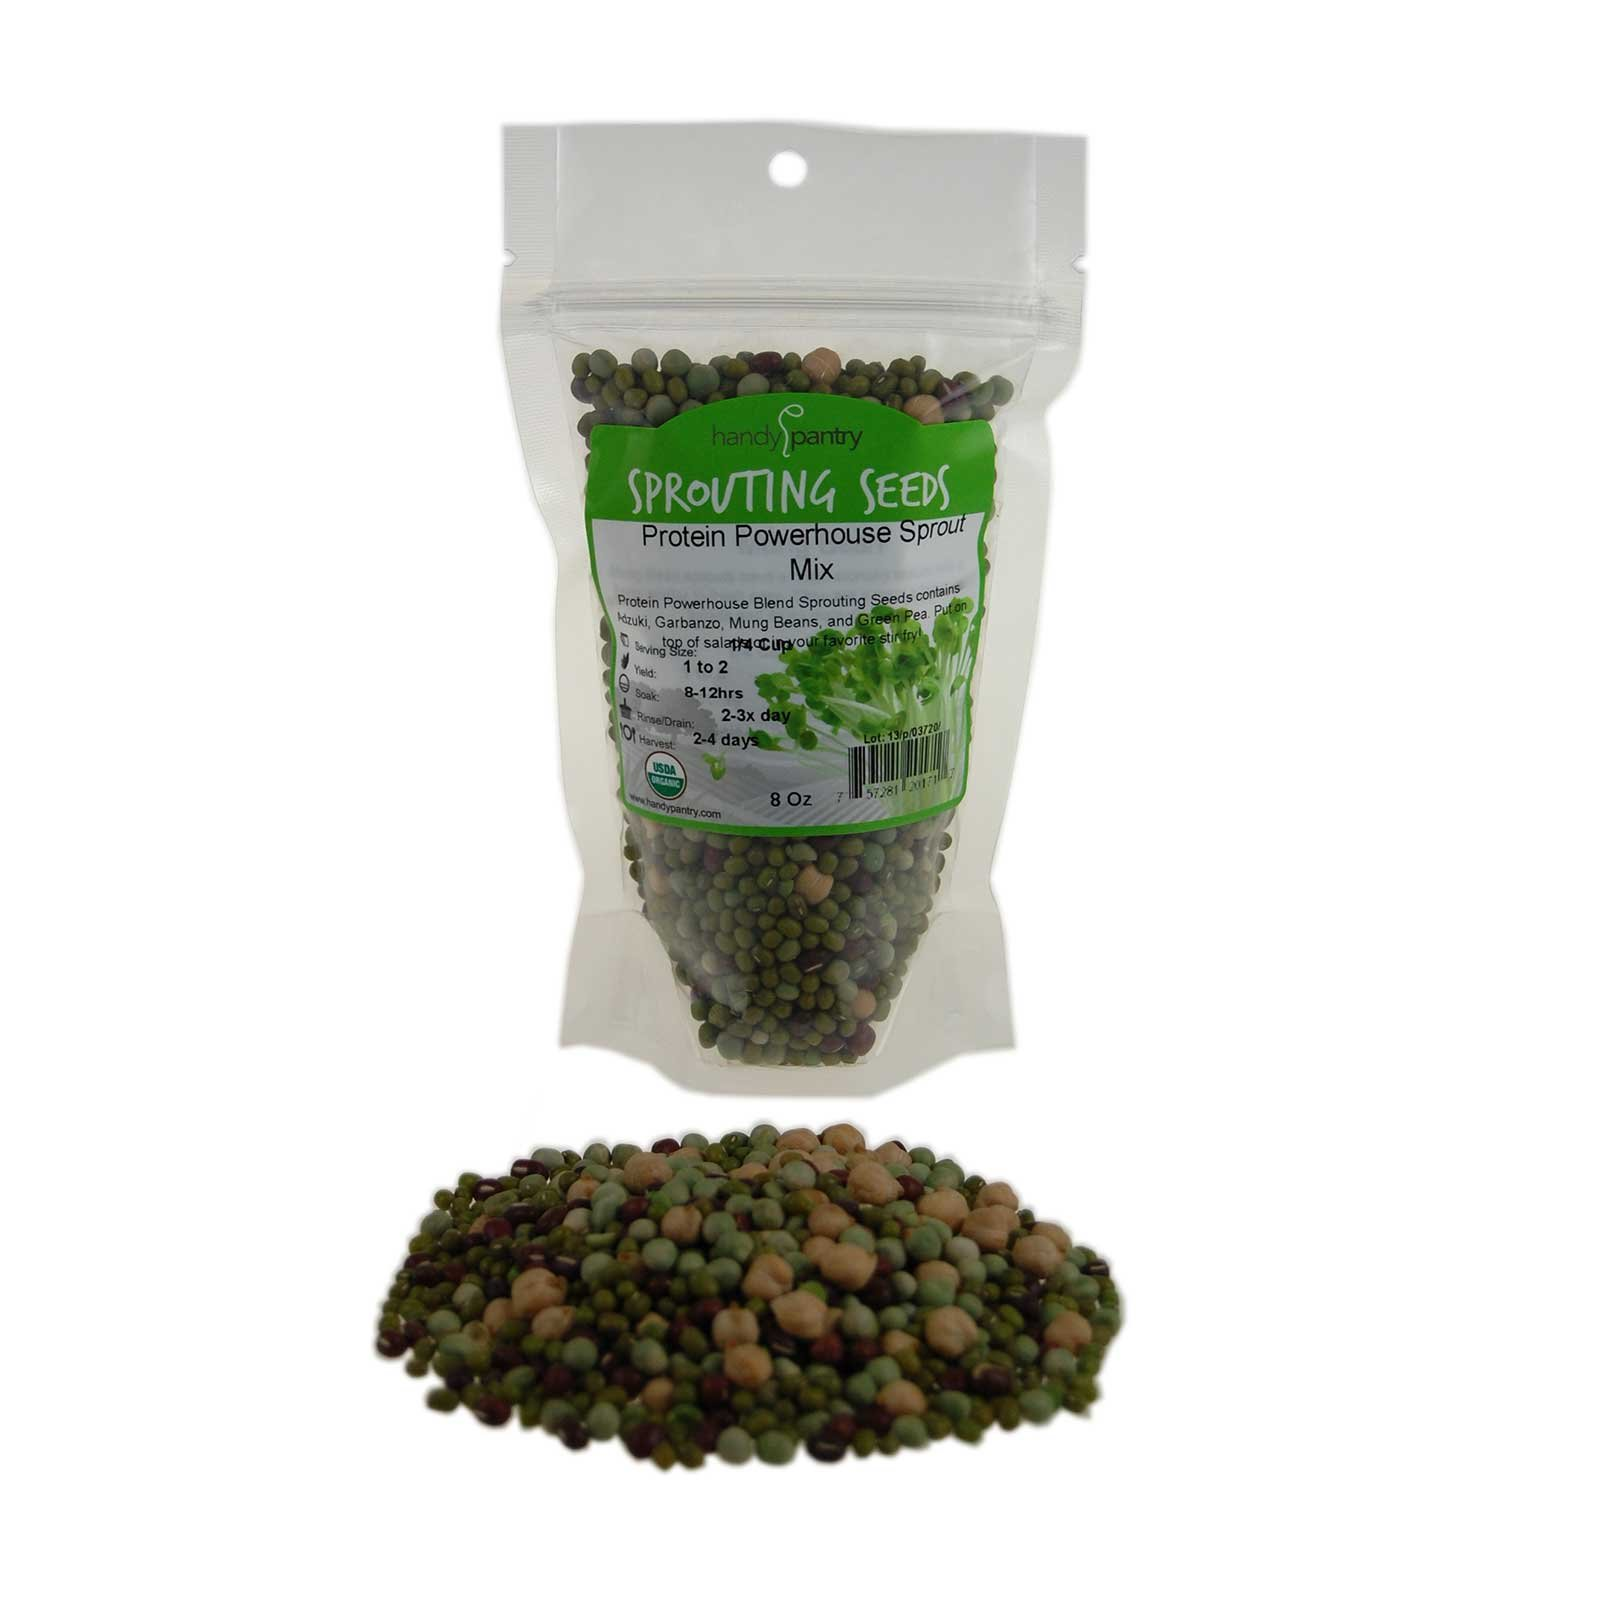 Protein Powerhouse Sprouting Seed Mix: 8 Oz - Organic, Non-GMO - Sprouting Sprouts, Food Storage. High Protien Sprouts - Pea, Mung, Green Pea, Adzuki